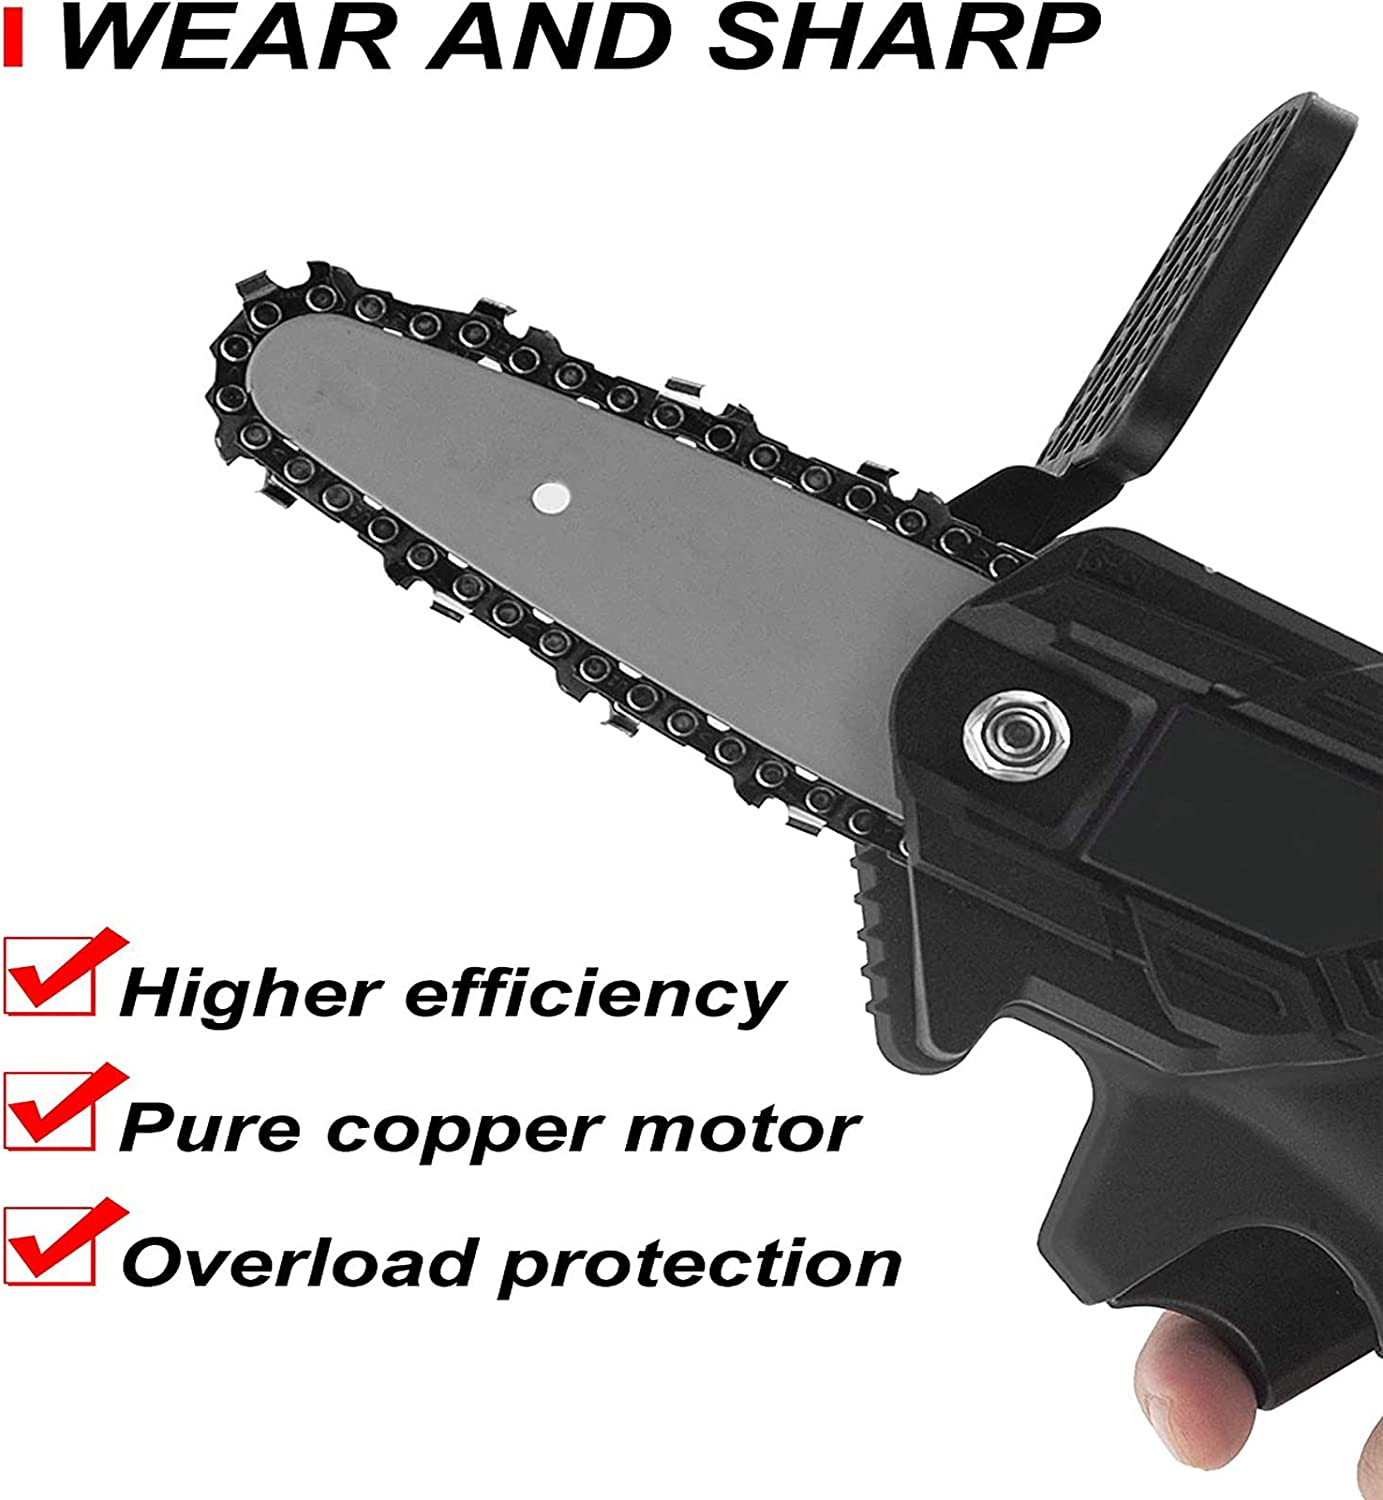 Portable 24V Electric Chainsaw Pruning Shears Chainsaw for Courtyard Tree Branch Wood Cutting with Spare Battery and Handy Case Bcamelys Mini Chainsaw 4-Inch Cordless Power Chain Saws